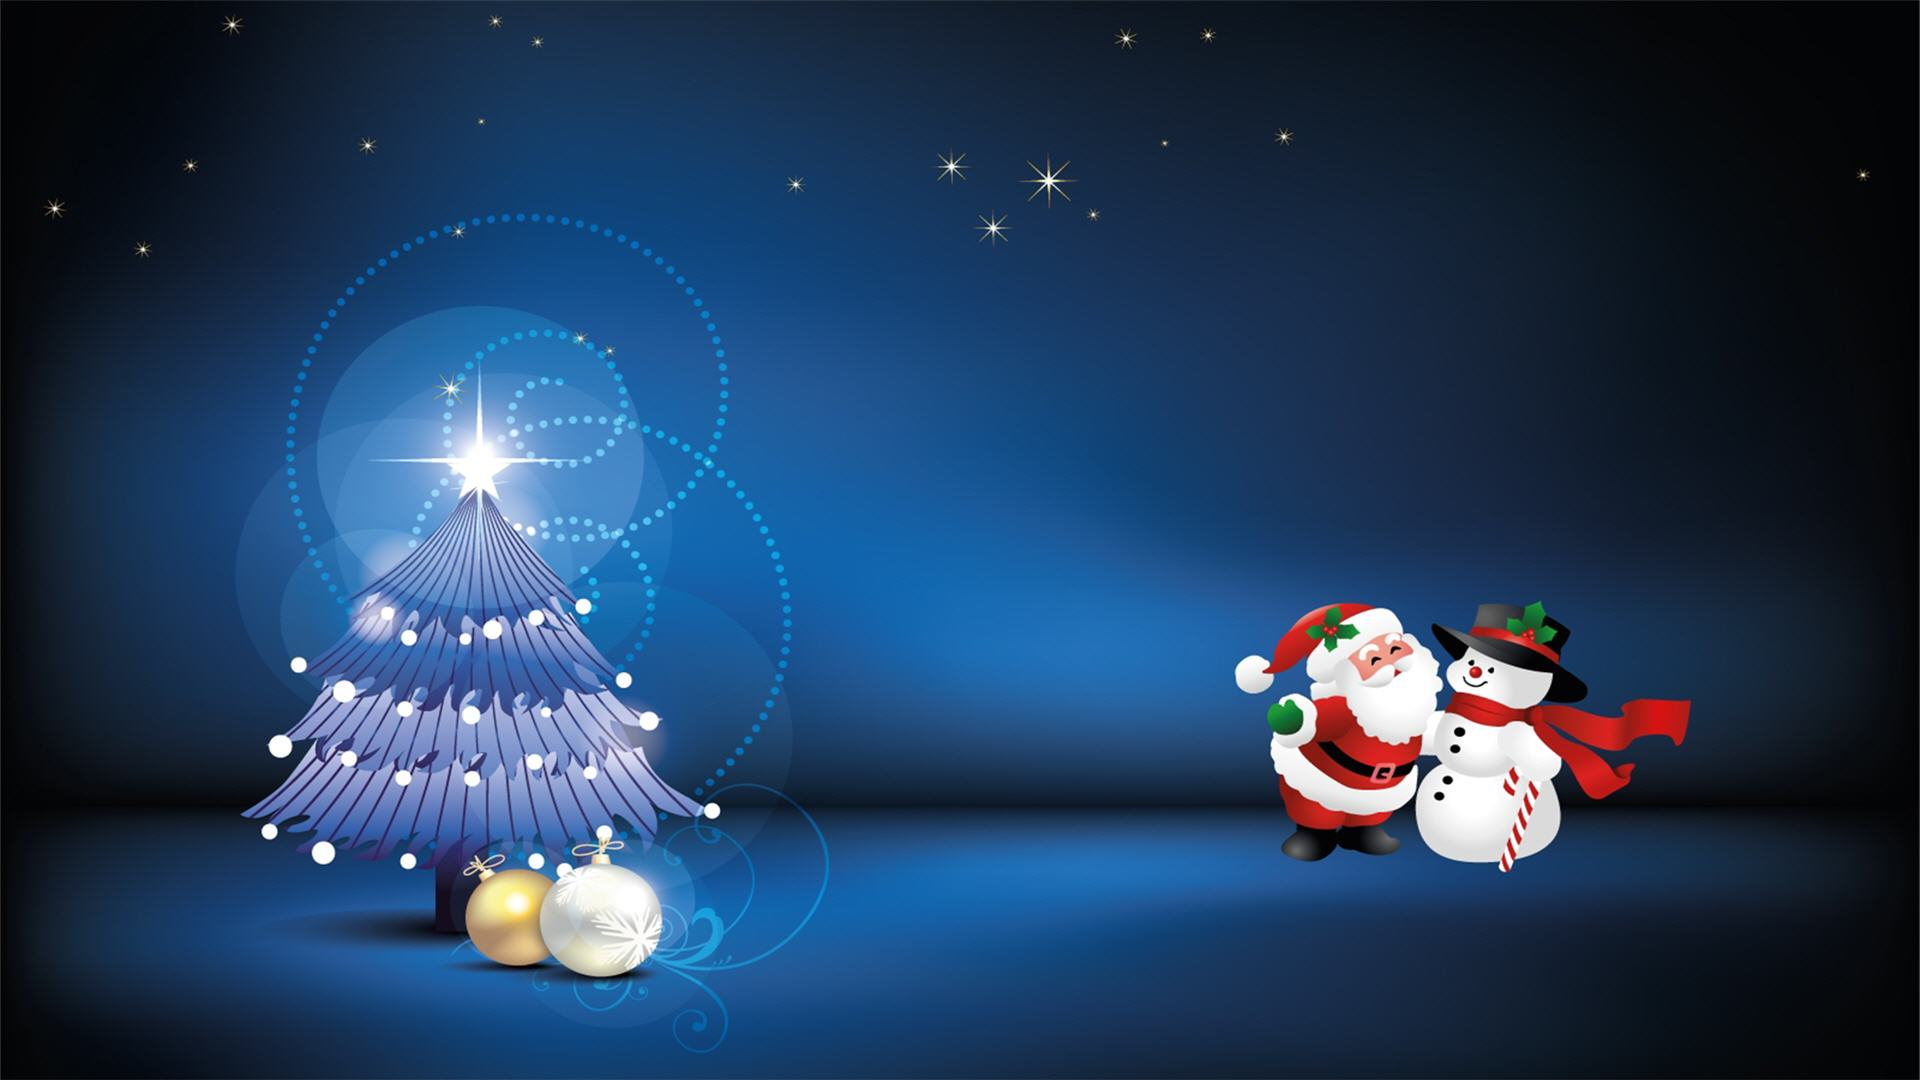 Top 24 Best Free Hd Christmas Wallpapers: Free HD Christmas Wallpapers Desktop Backgrounds 2016